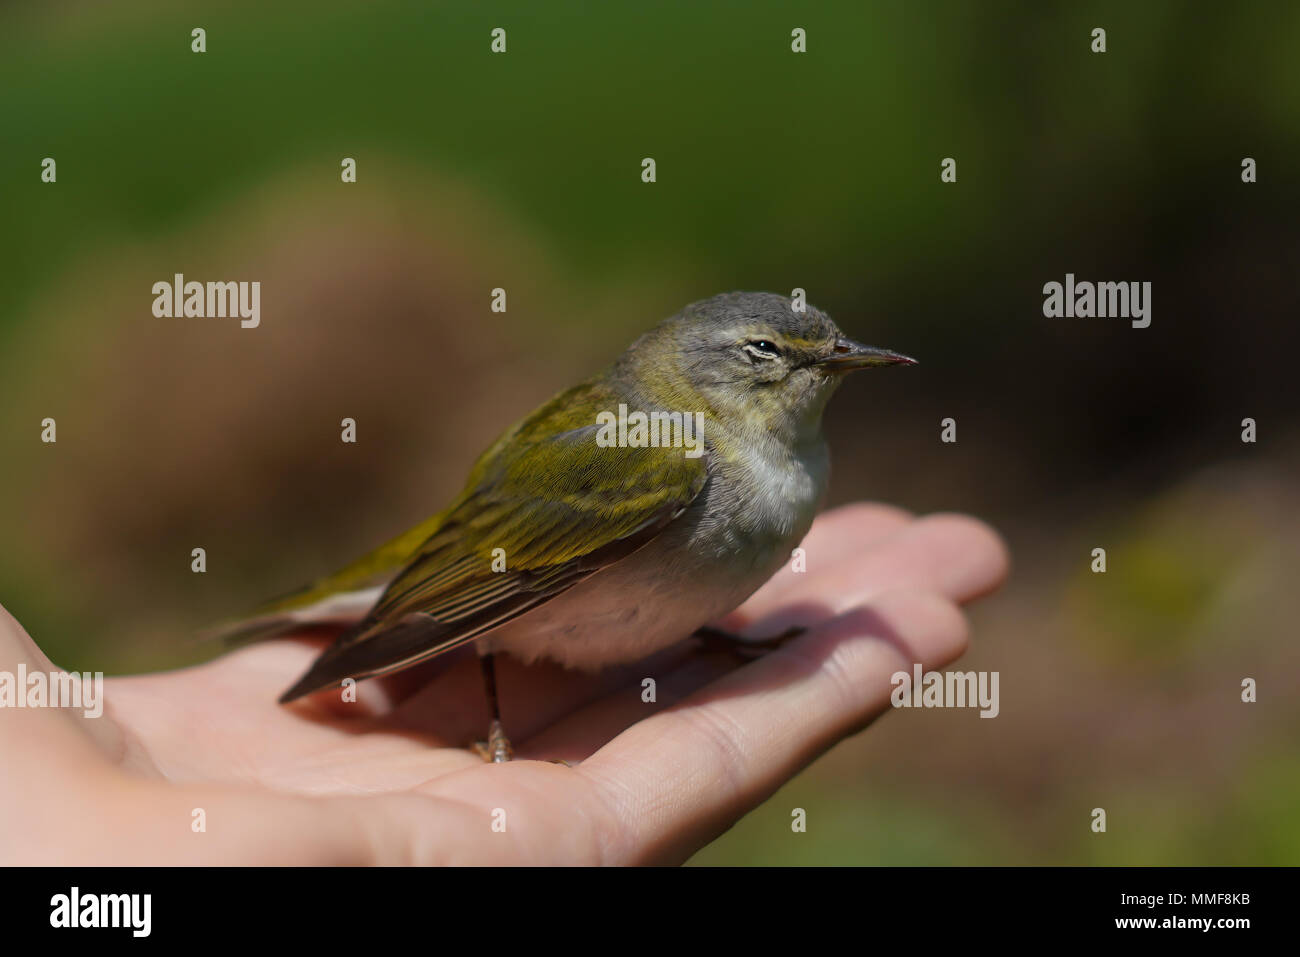 Friendly Finch Stock Photo